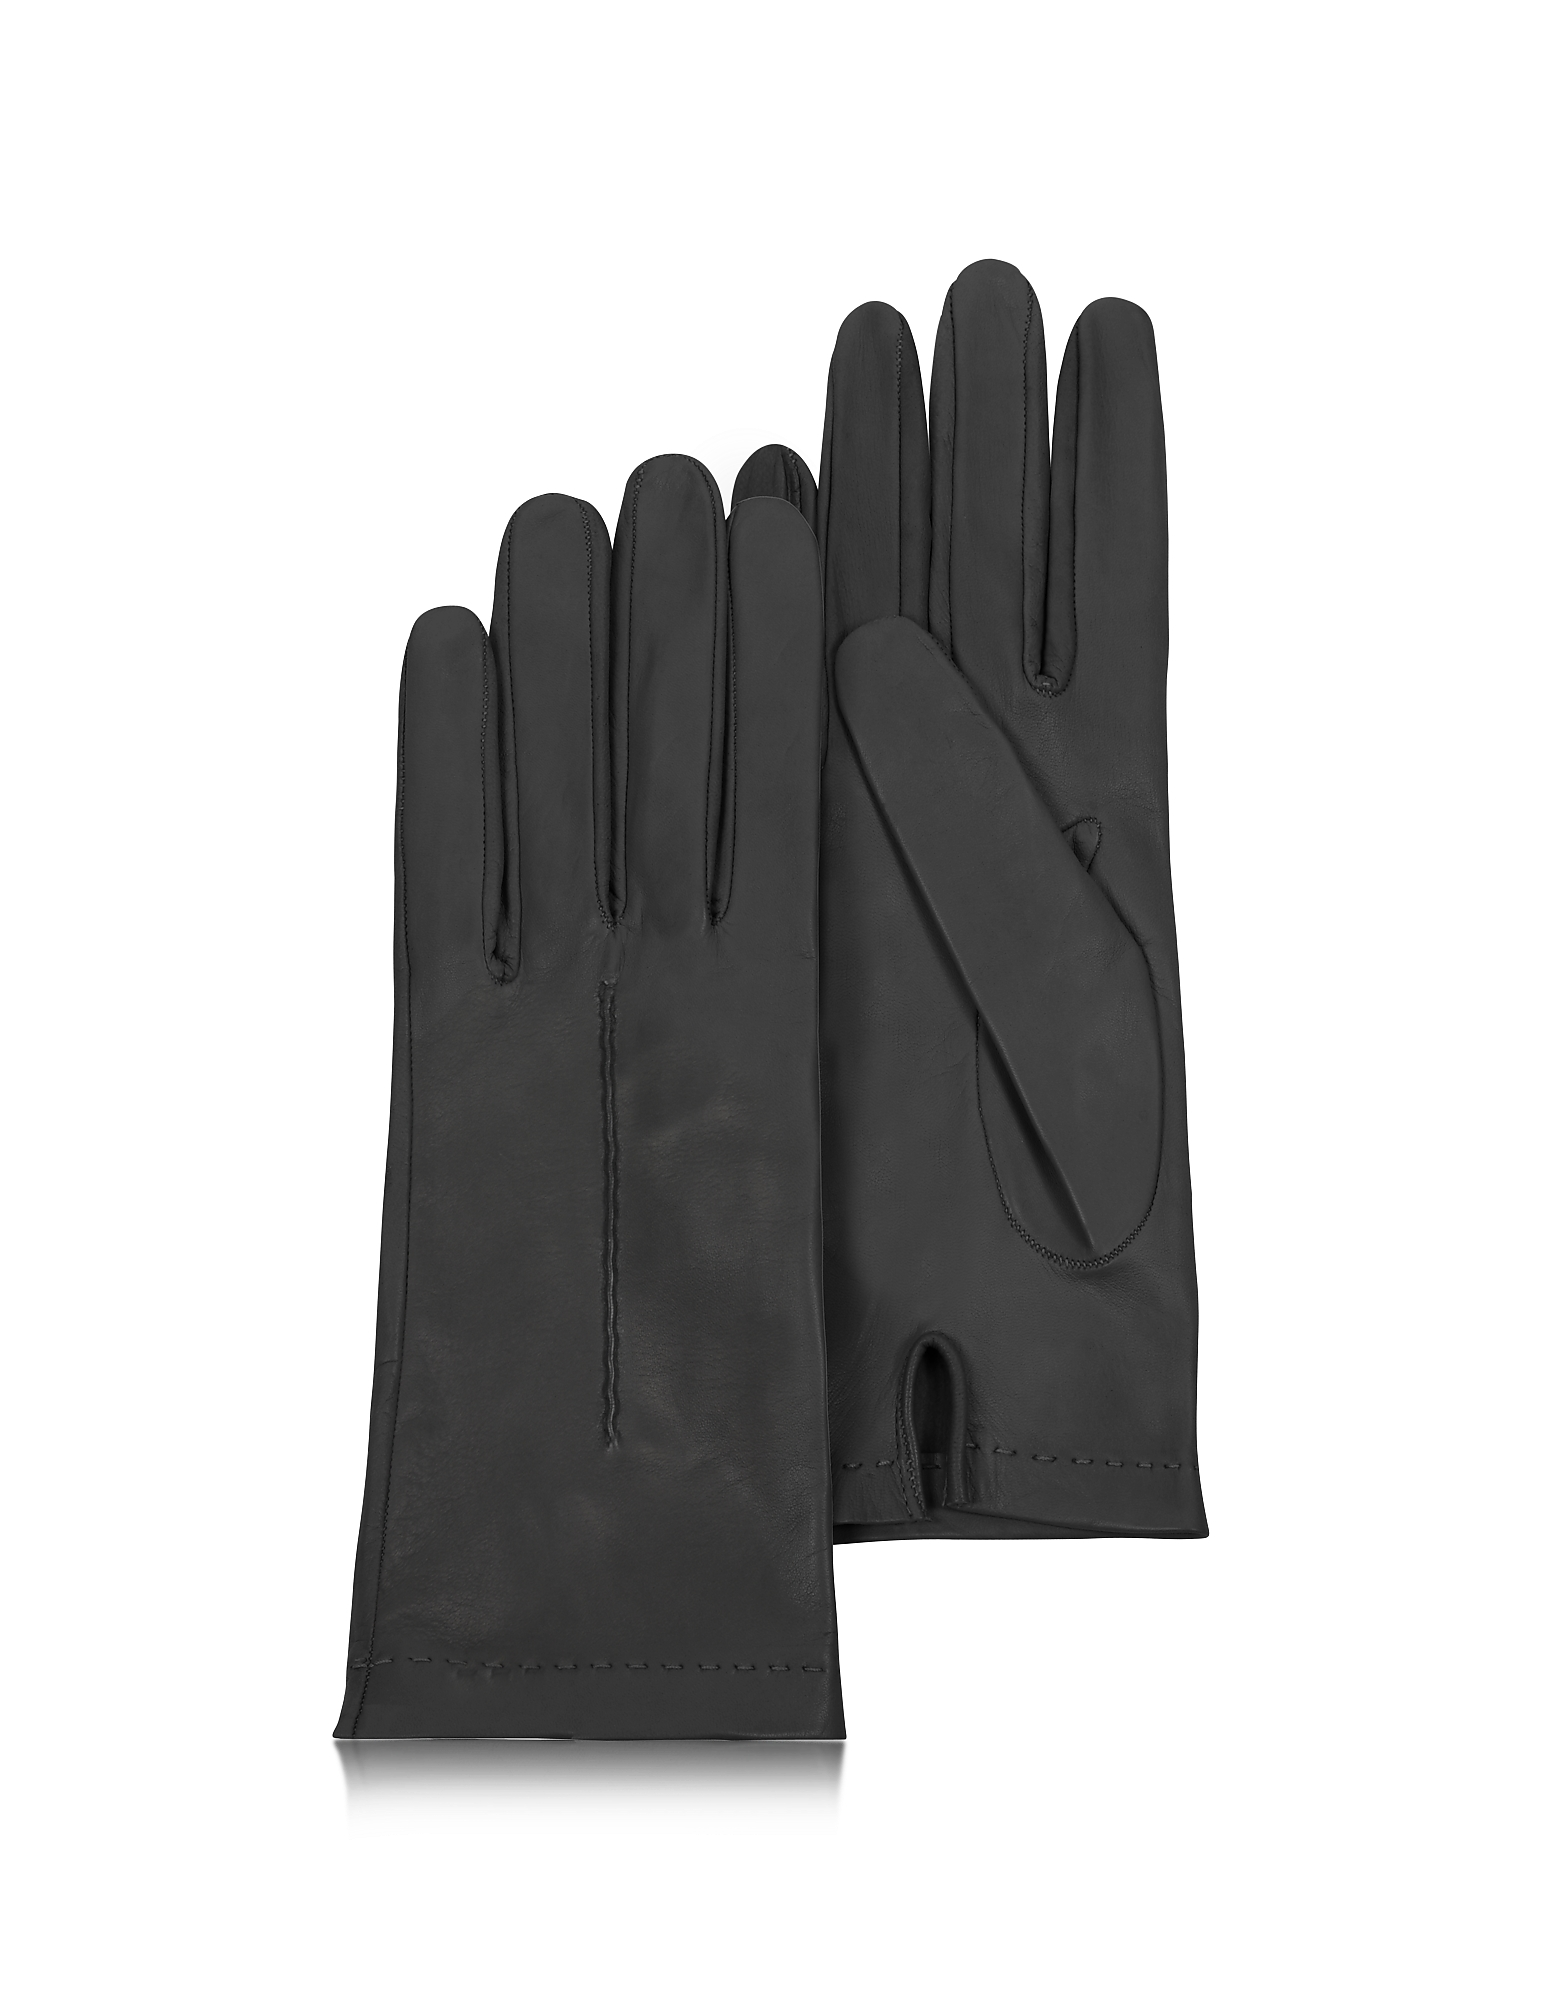 Forzieri Designer Women's Gloves, Women's Black Unlined Italian Leather Gloves